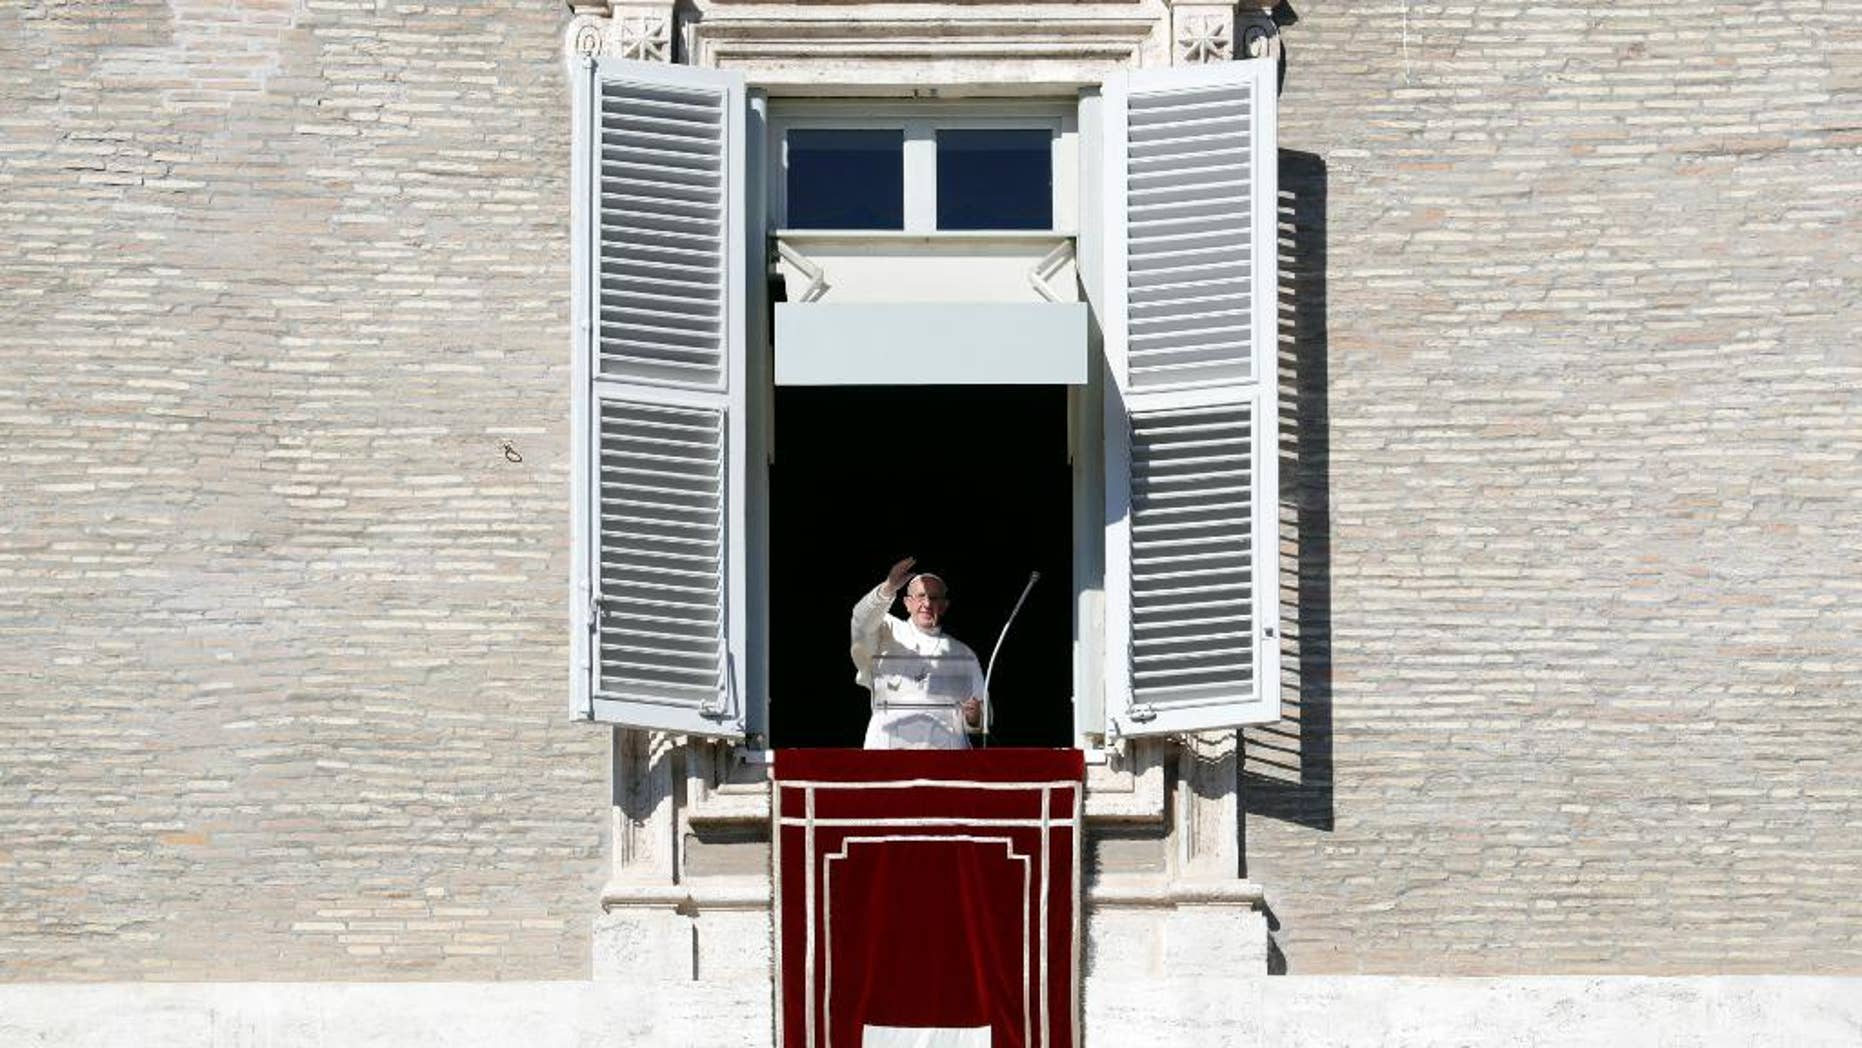 Pope Francis delivers his blessing during the Angelus noon prayer he celebrated from the window of his studio overlooking St. Peter's Square, at the Vatican, Sunday, Oct. 30, 2016. (AP Photo/Andrew Medichini)